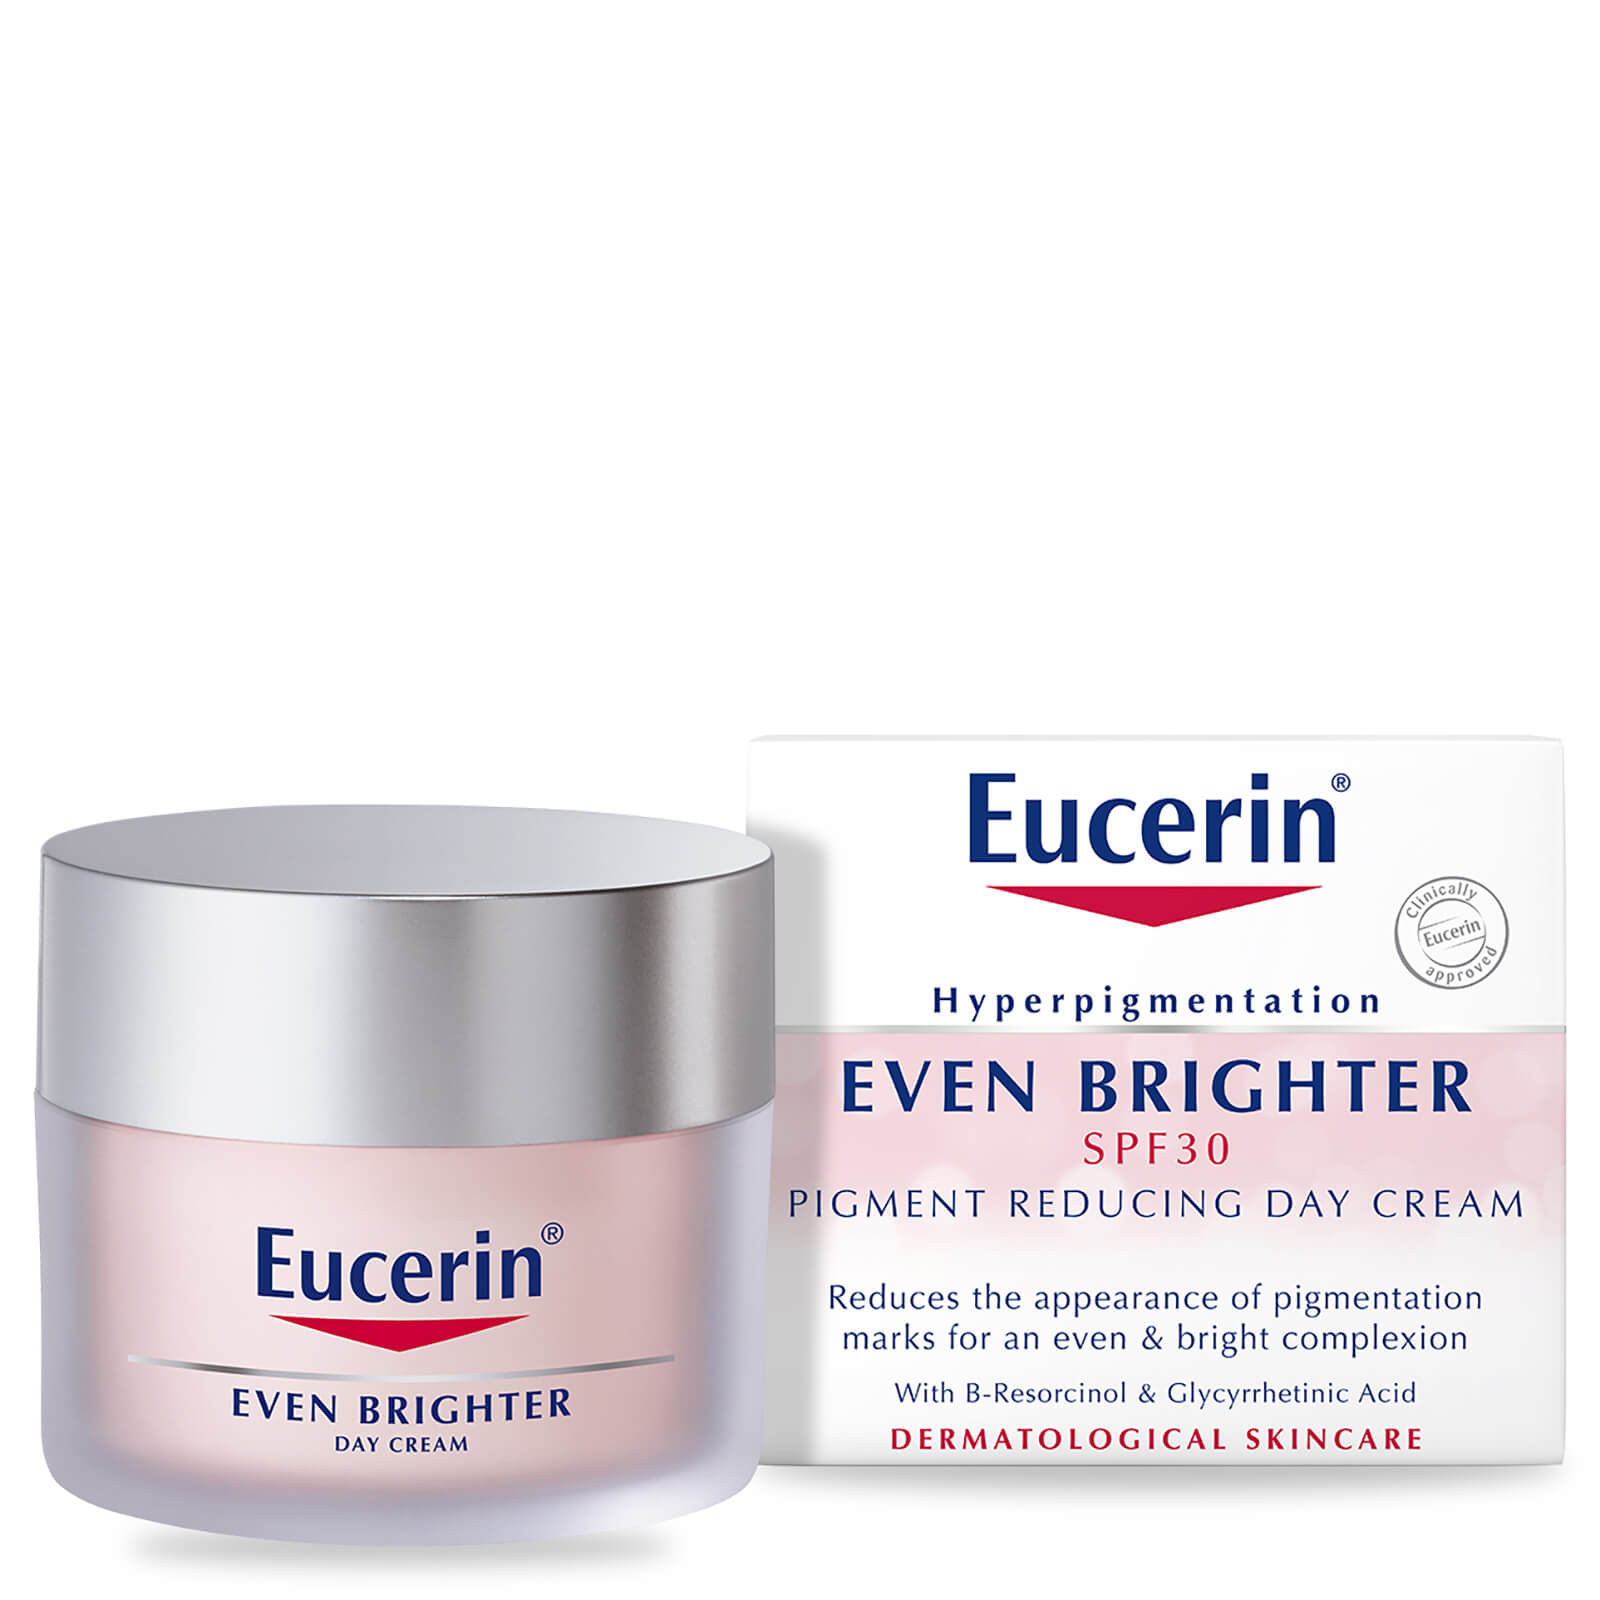 Eucerin Even Brighter Pigment Reducing Day Cream SPF 30